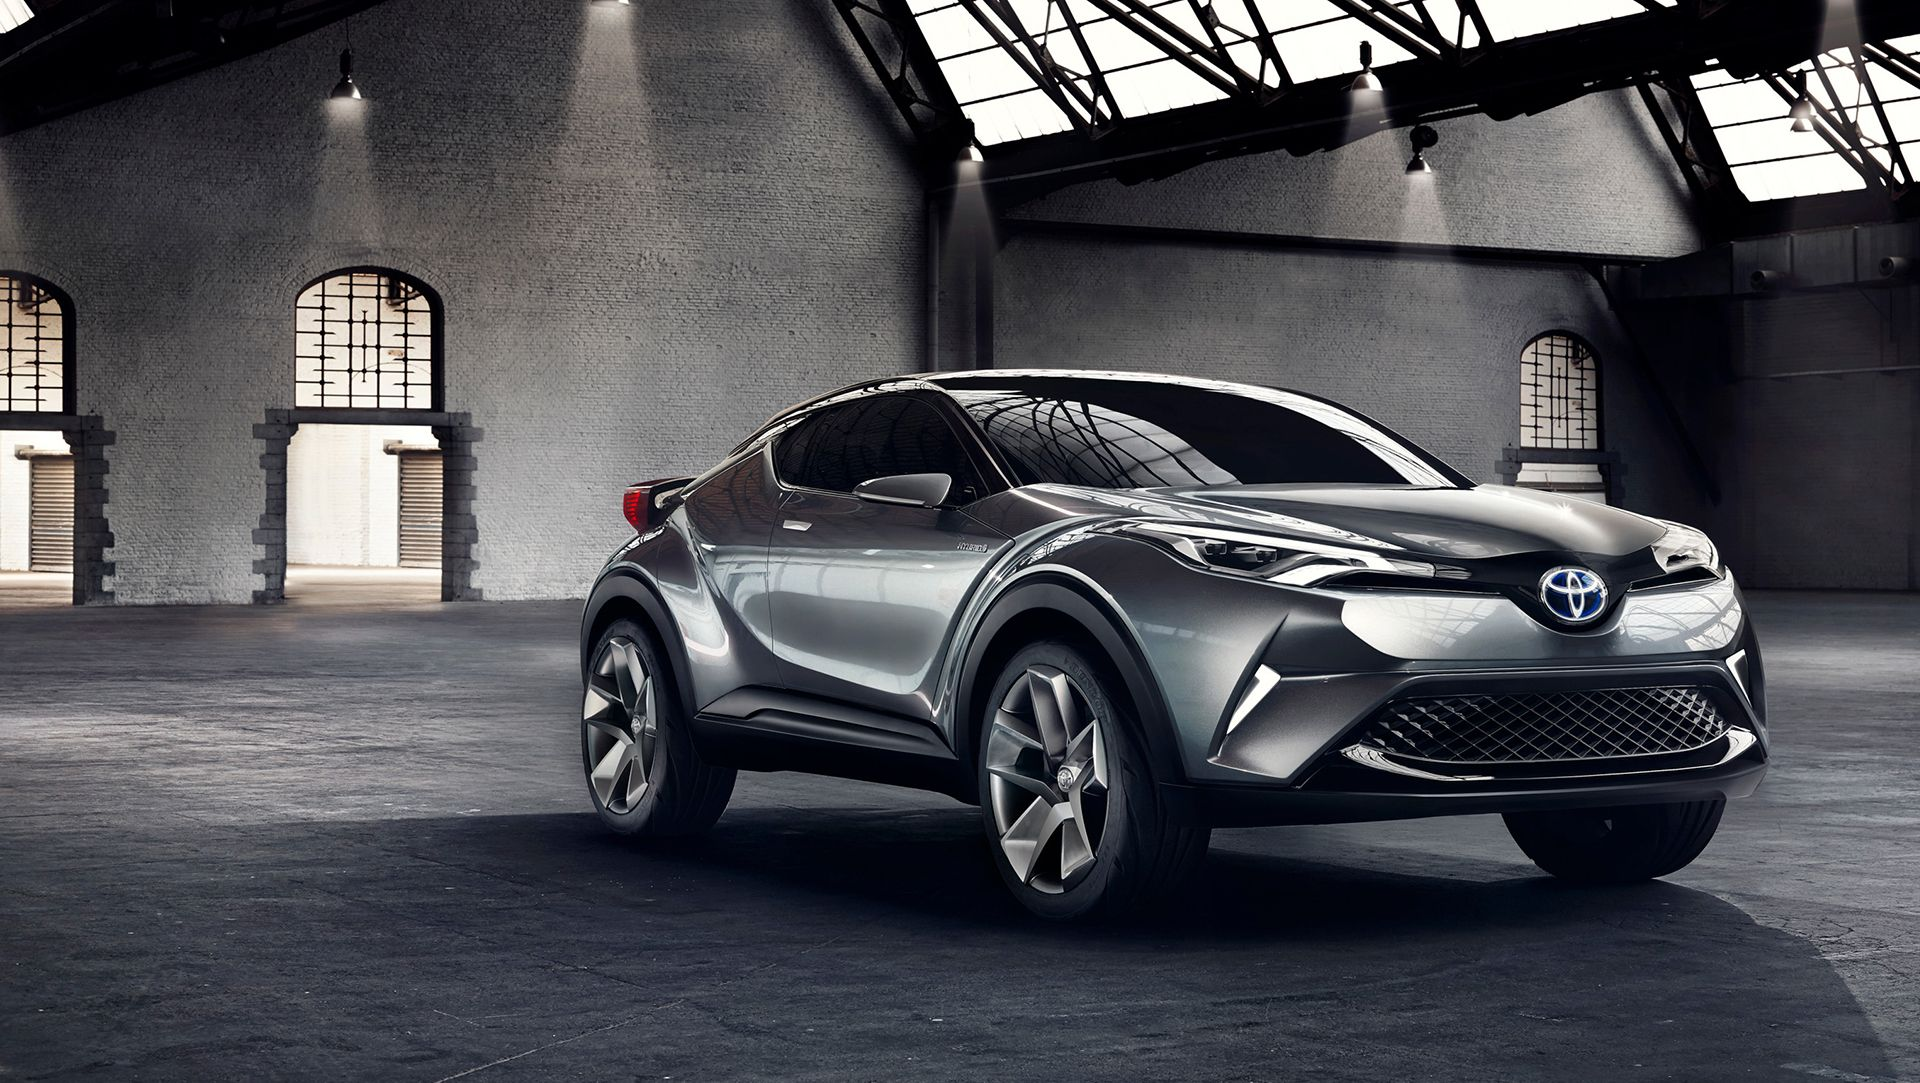 f4483f0466 Toyota has used the world reveal of a second C-HR Concept vehicle to  confirm production plans for an all-new stylish